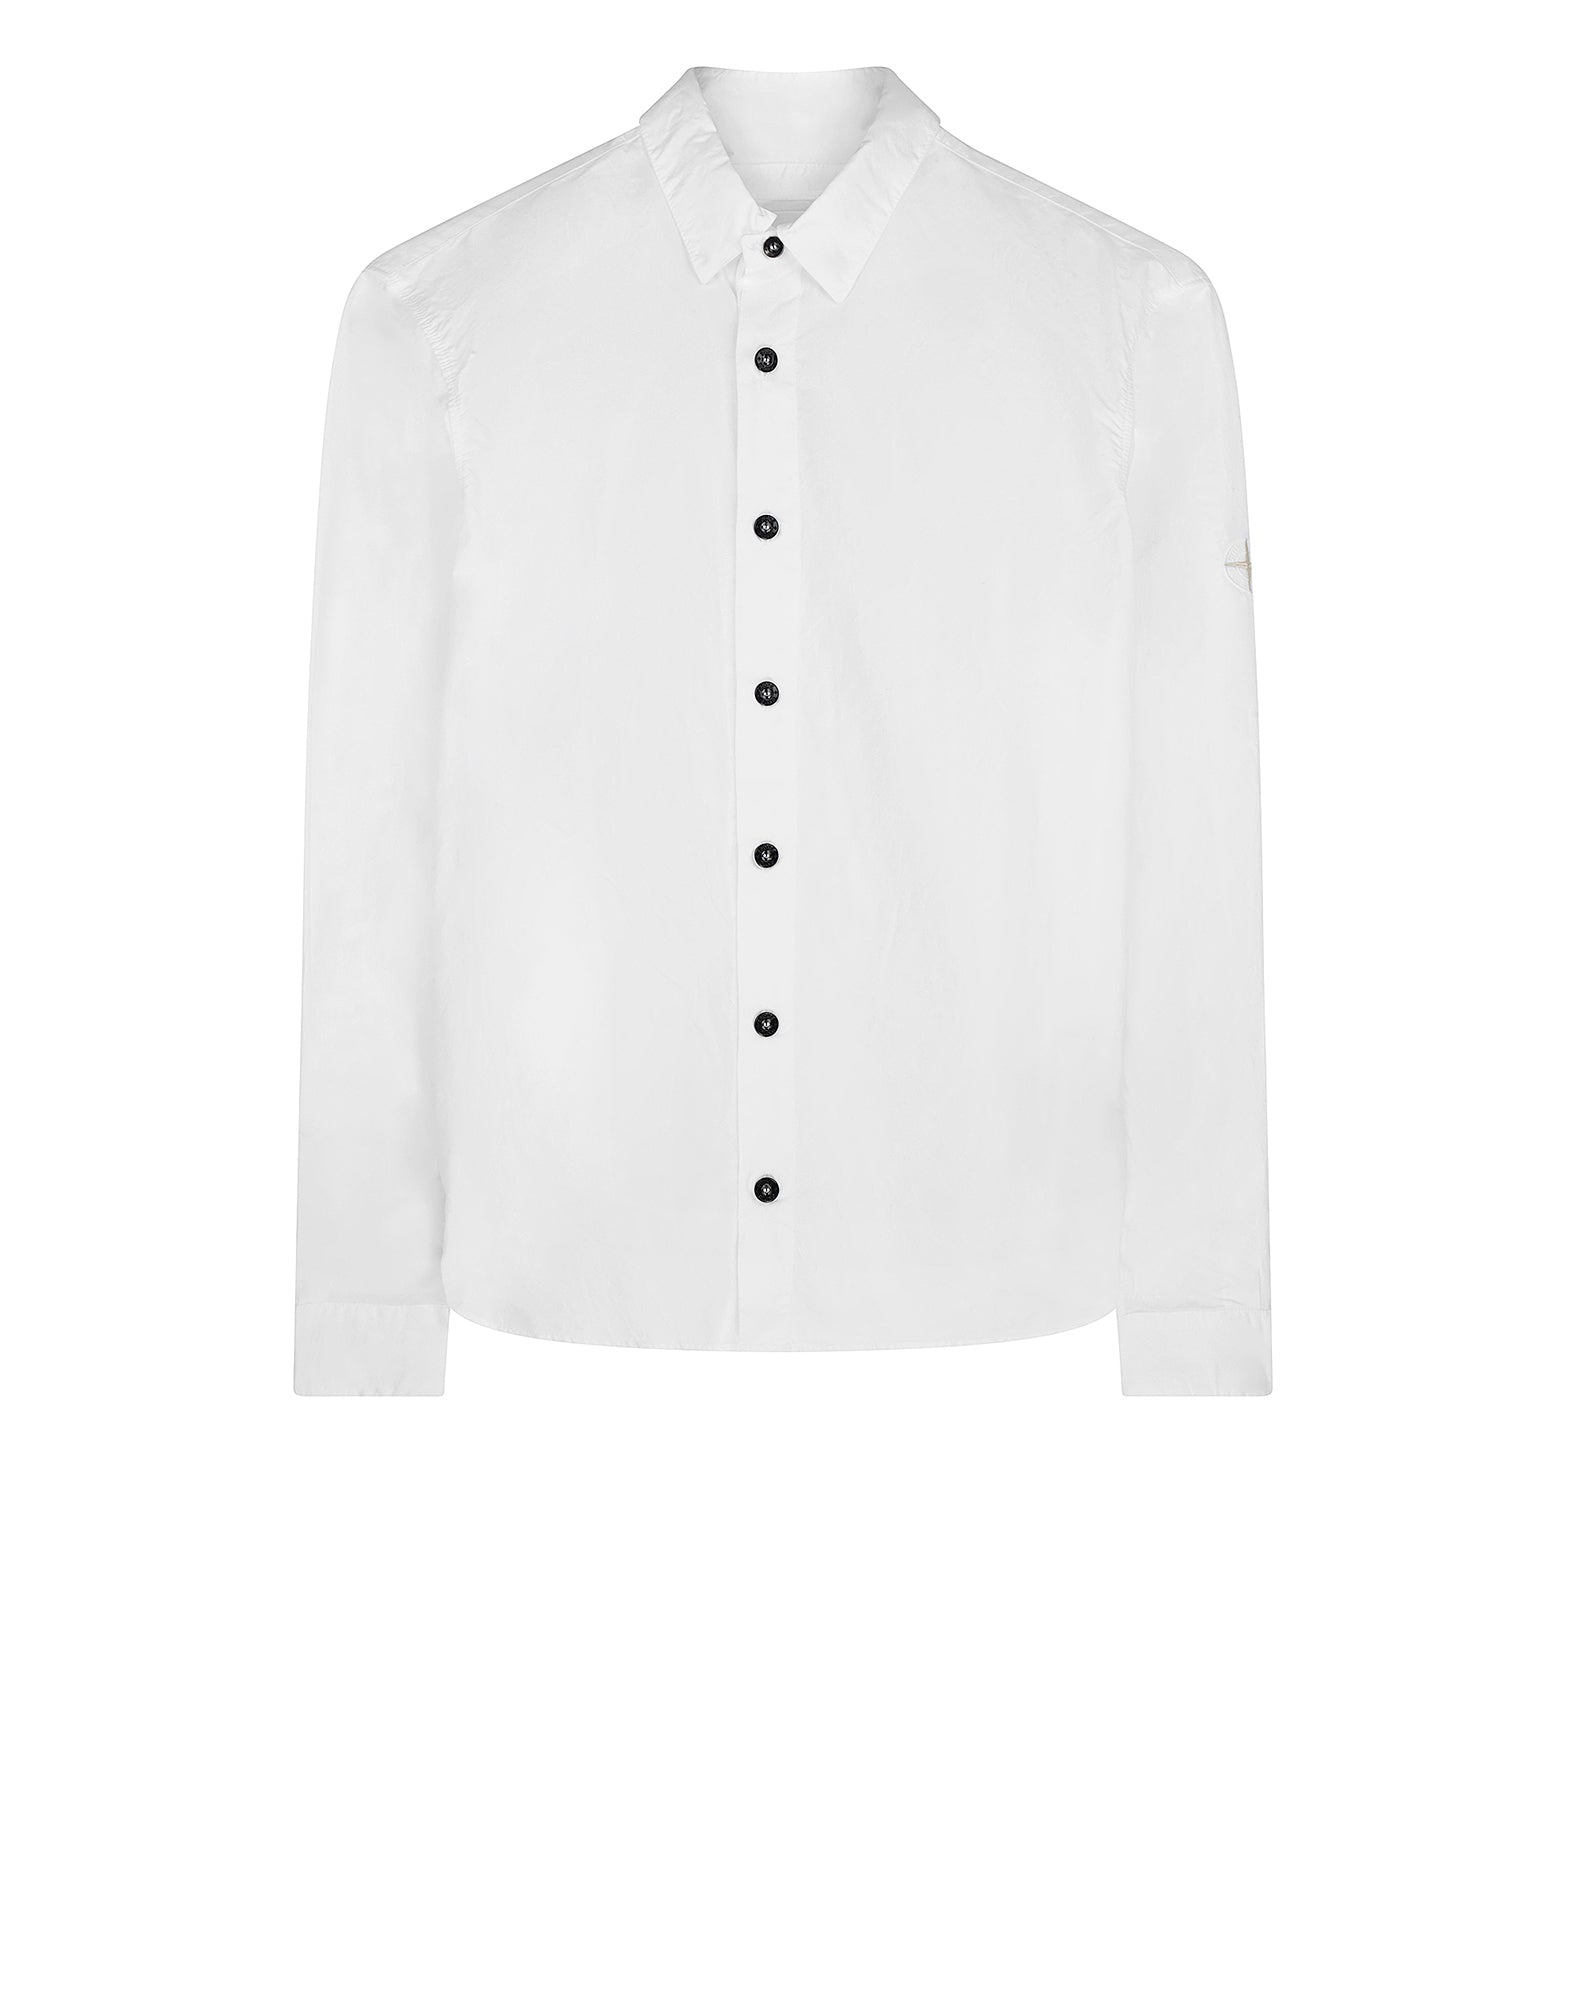 11710 Cotton Shirt in White